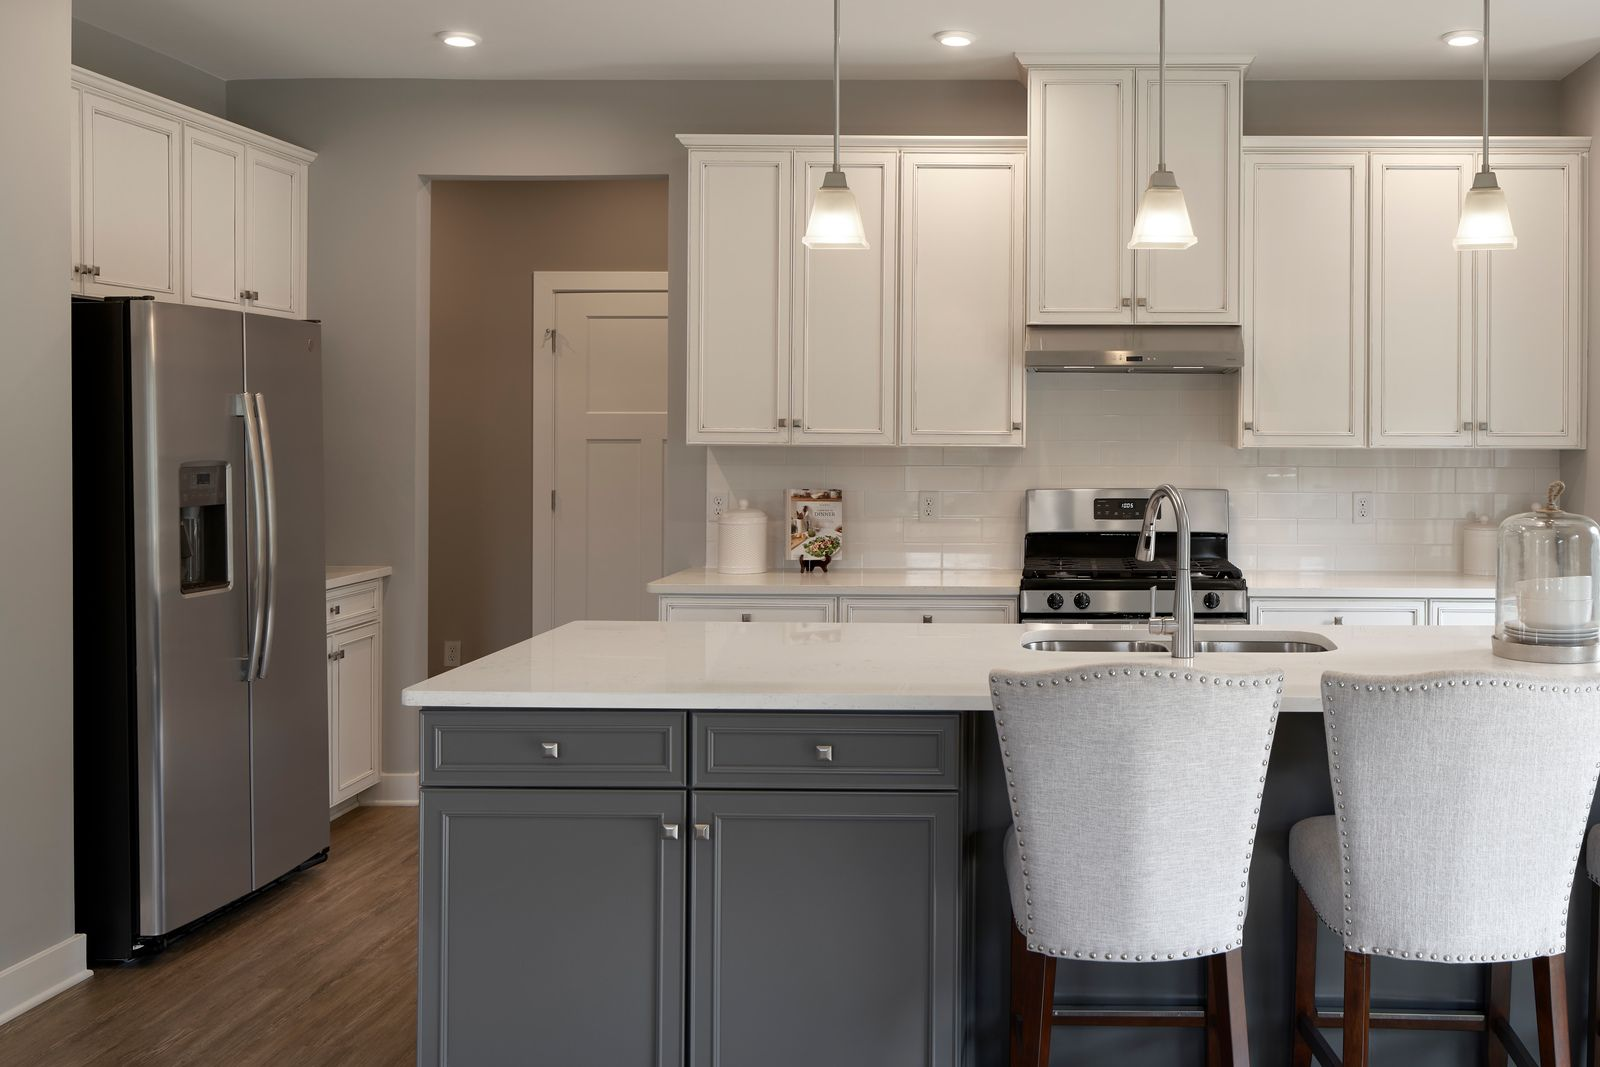 Kitchen featured in the Hudson By Ryan Homes in Washington, VA